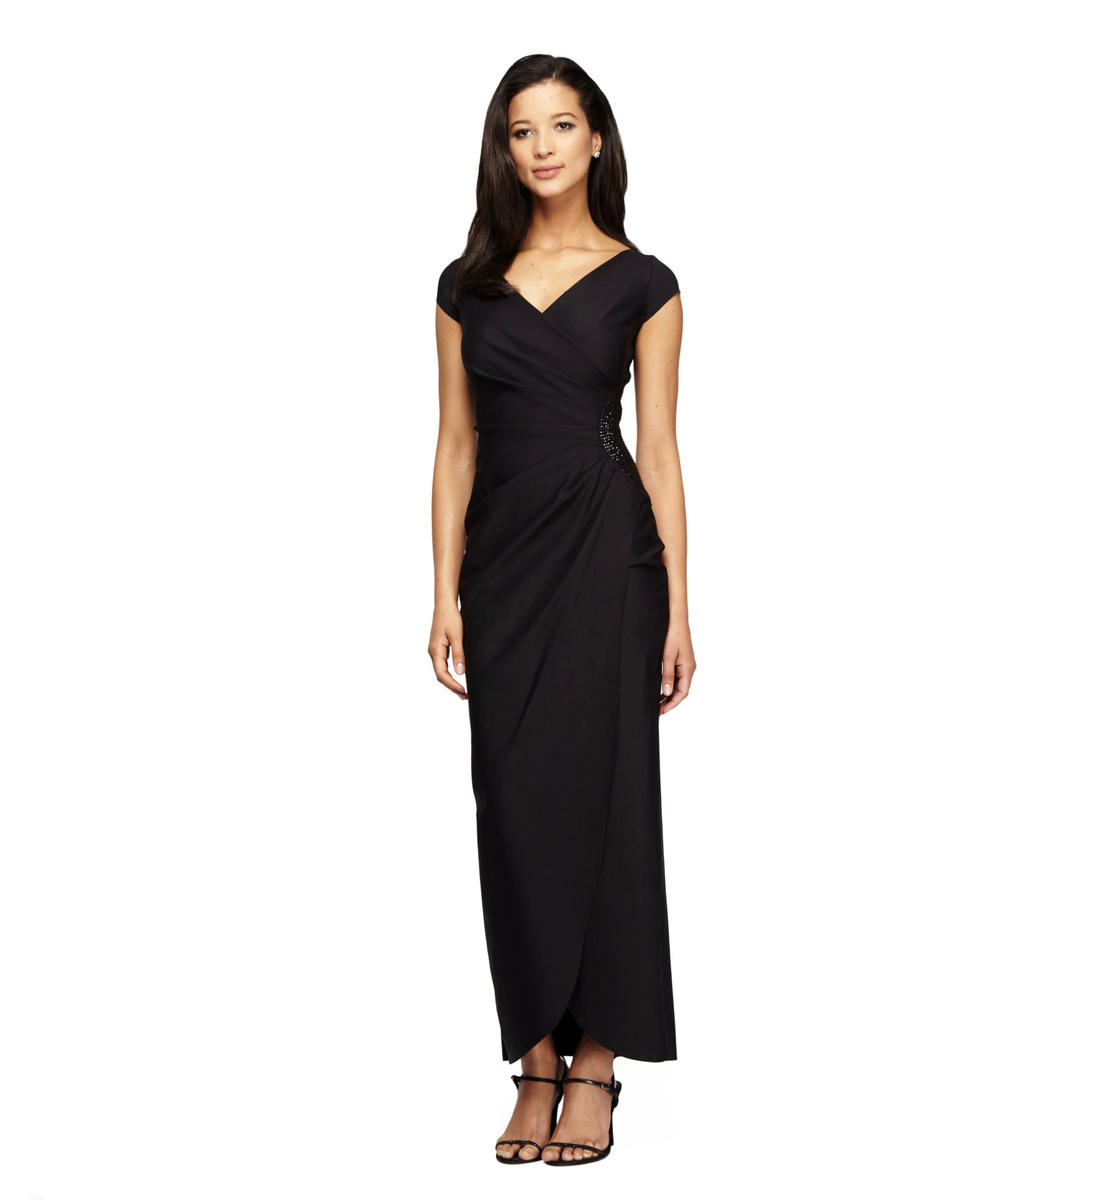 Indulging Alex Evening Dressy Dresses Farmingdale Ny Alex Evening Dresses Uk Alex Evening Dresses Dillards wedding dress Alex Evening Dresses